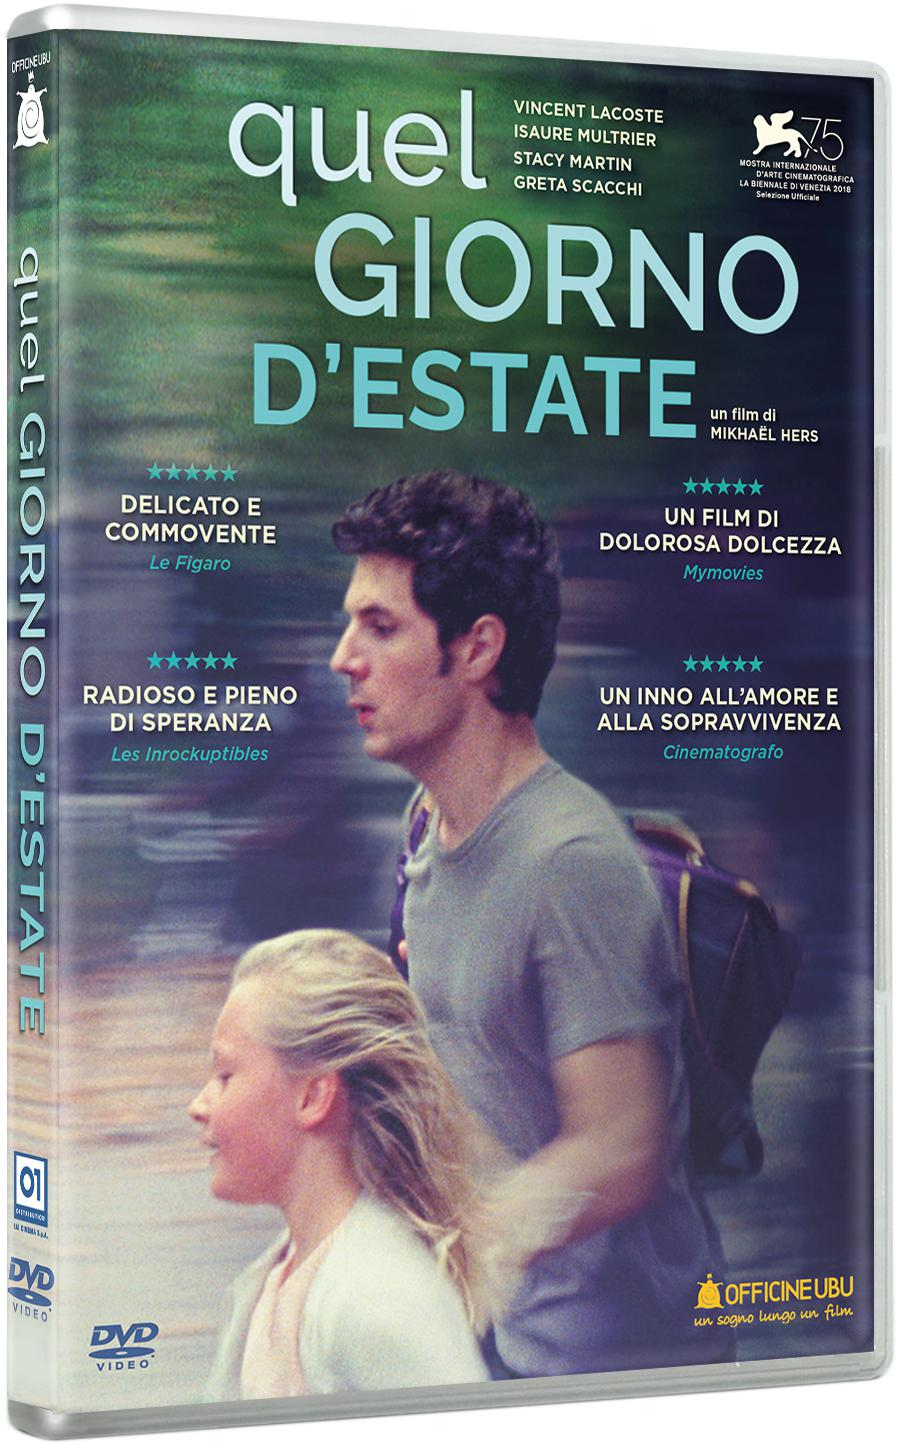 QUEL GIORNO D'ESTATE (DVD)